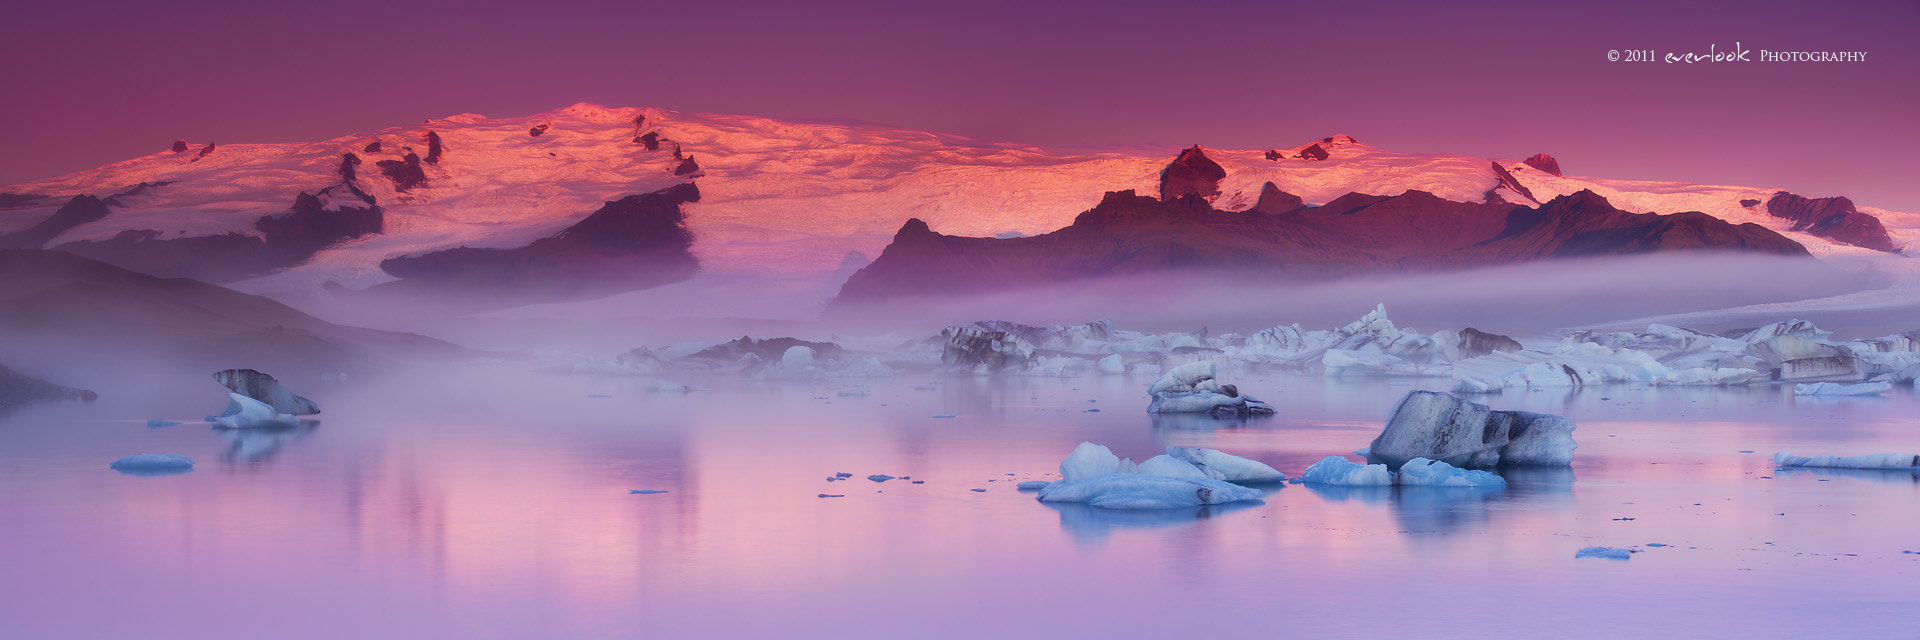 Photograph Veil of Ice by Dylan Toh  & Marianne Lim on 500px